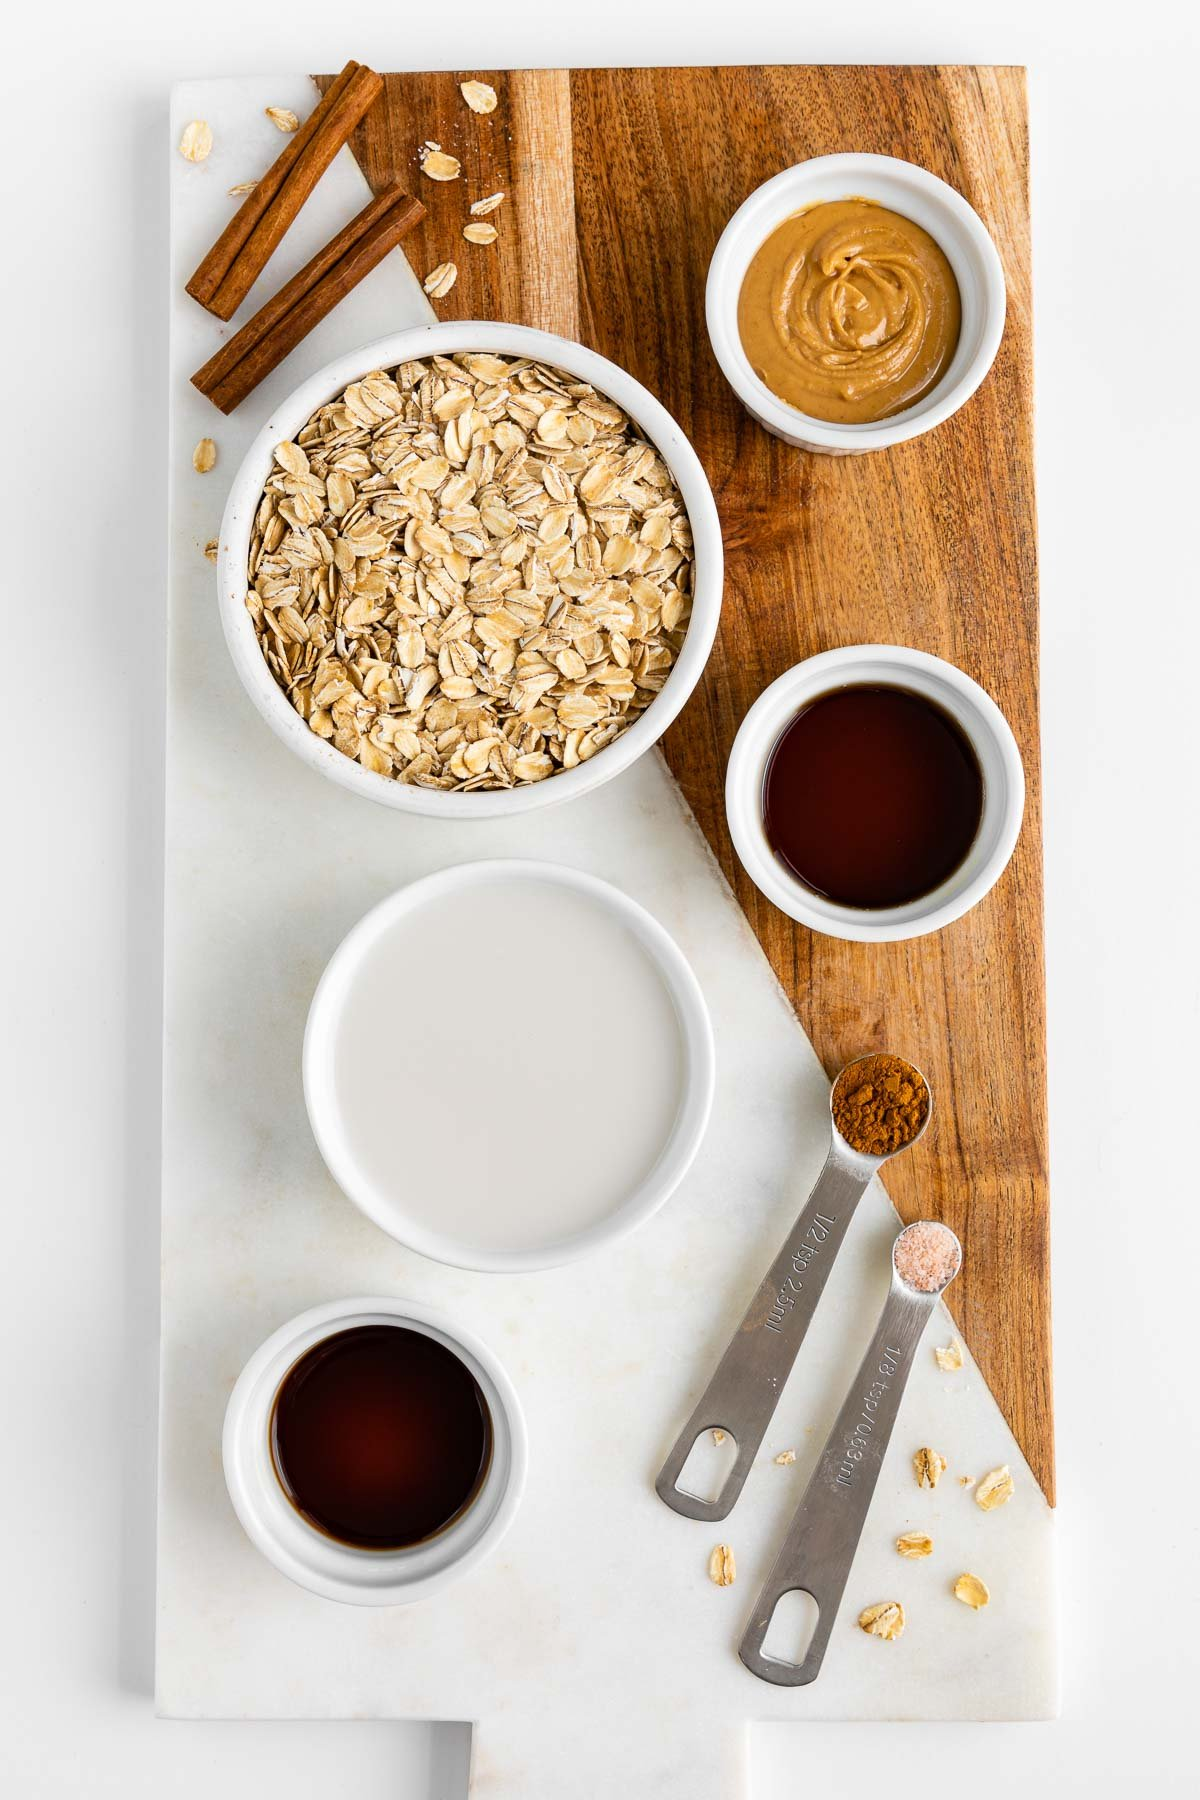 a marble and wood cutting board topped with small white bowls filled with rolled oats, peanut butter, almond milk, maple syrup, vanilla extract, and cinnamon